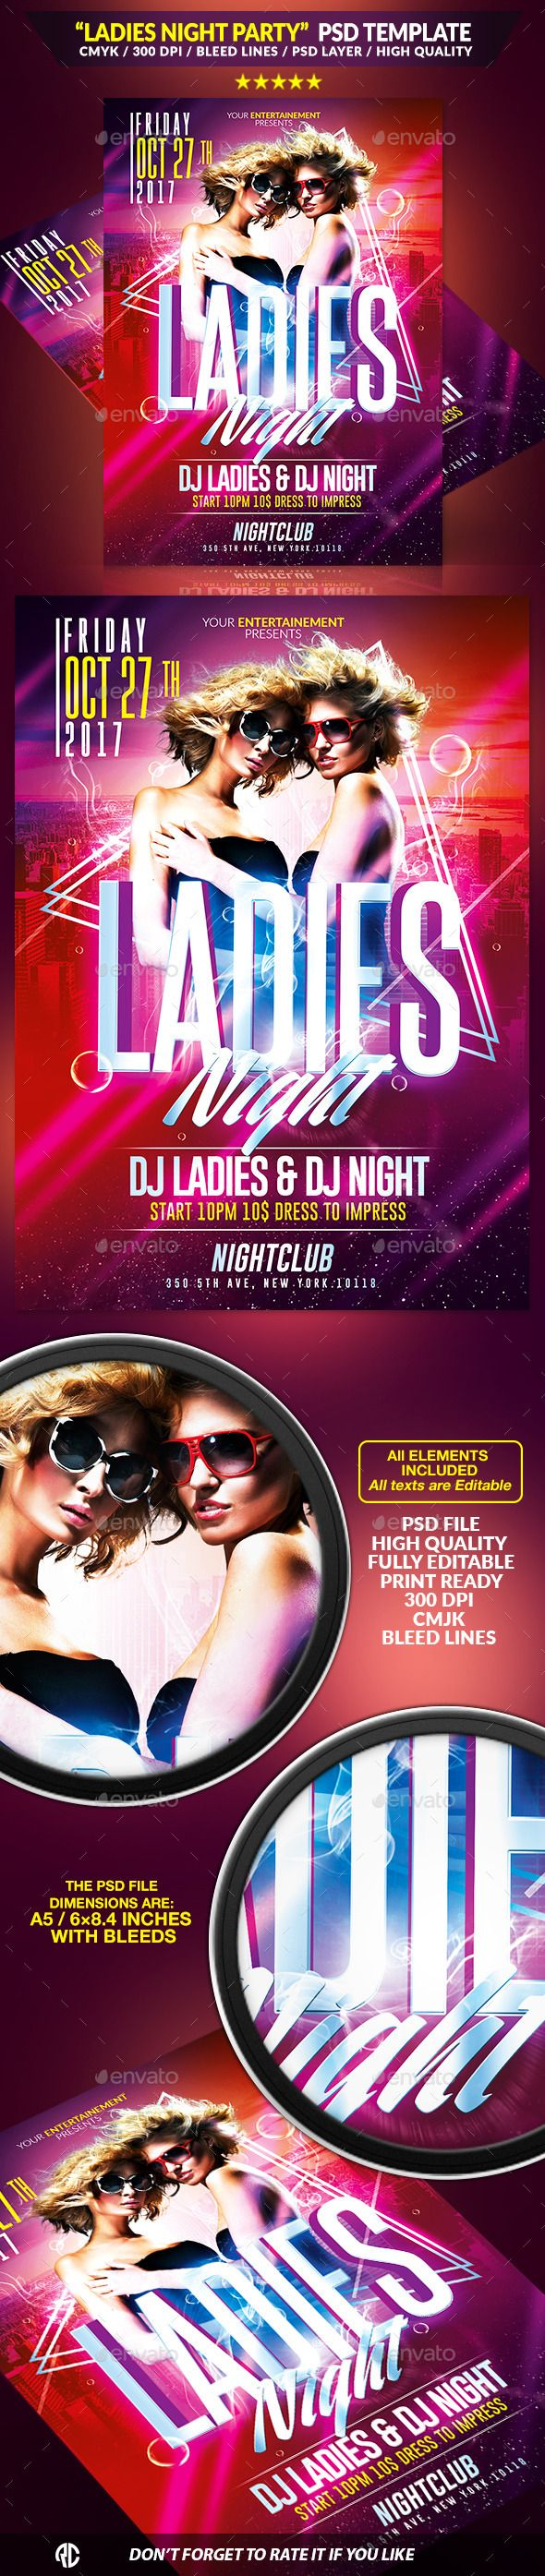 Ladies Night Party Flyer Template PSD #design Download: http://graphicriver.net/item/ladies-night-party-psd-template/12970542?ref=ksioks